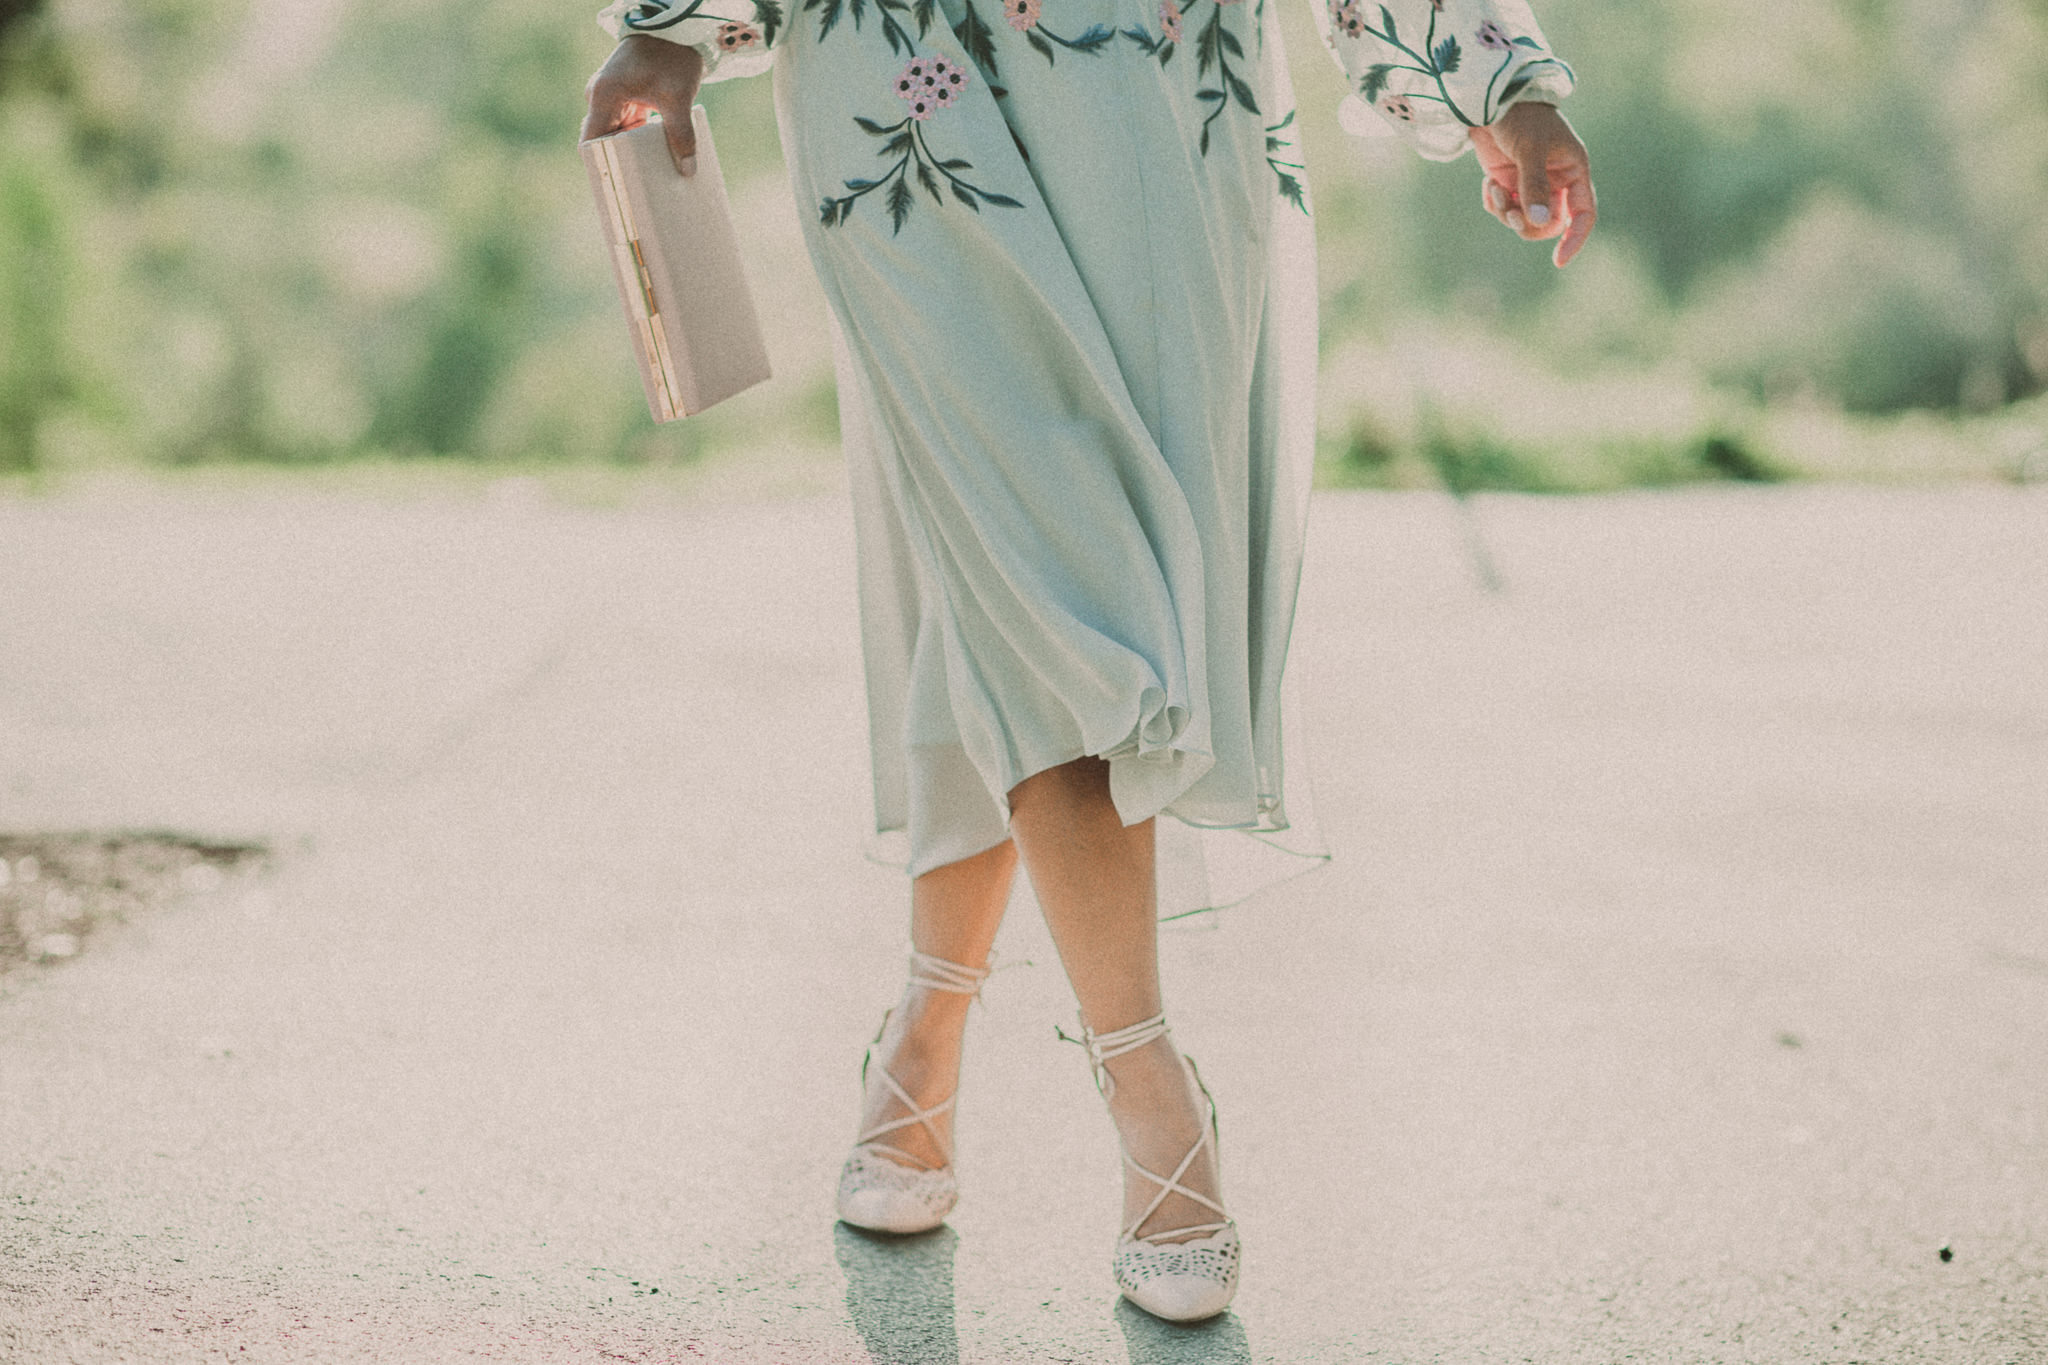 summer dress - high heels - vintage style photography